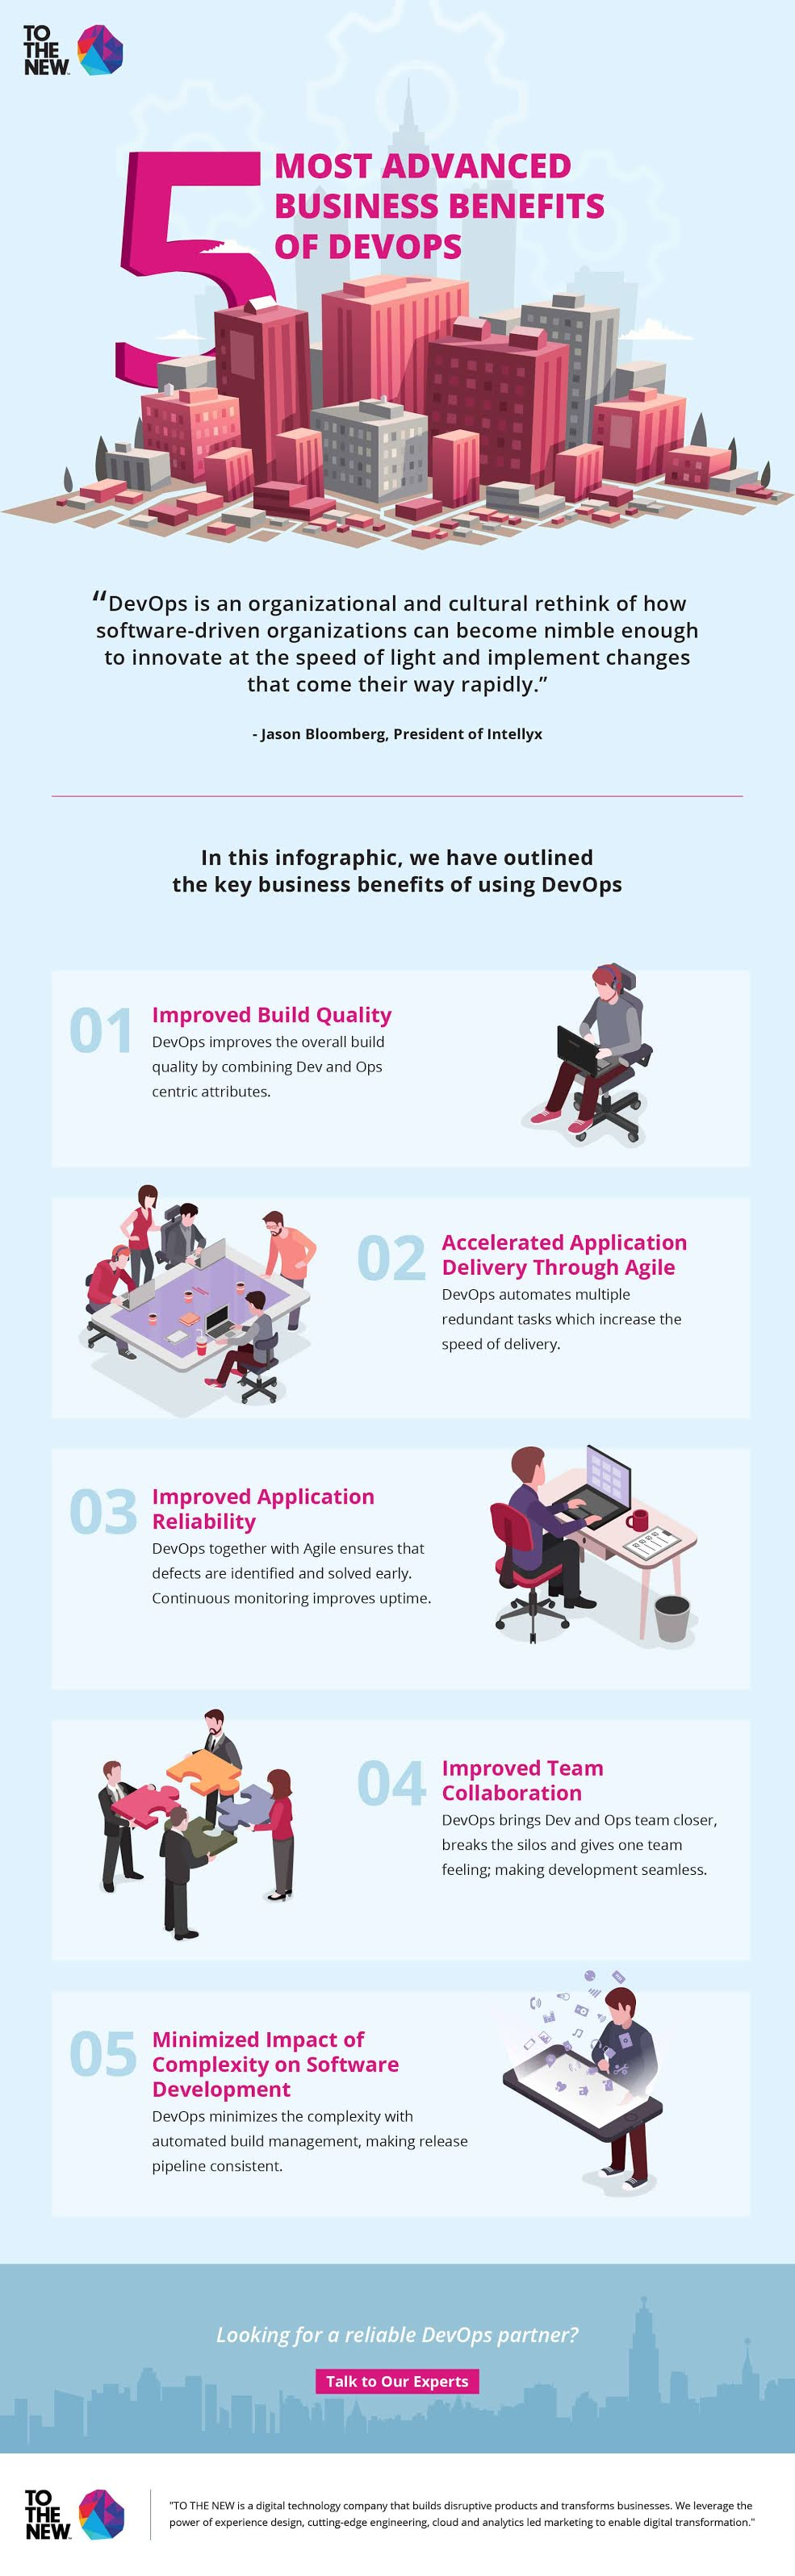 Top 5 Most Advanced Business Benefits of DevOps #infographic #Product Engineering #Software Development #Technology #Business #Business Benefits